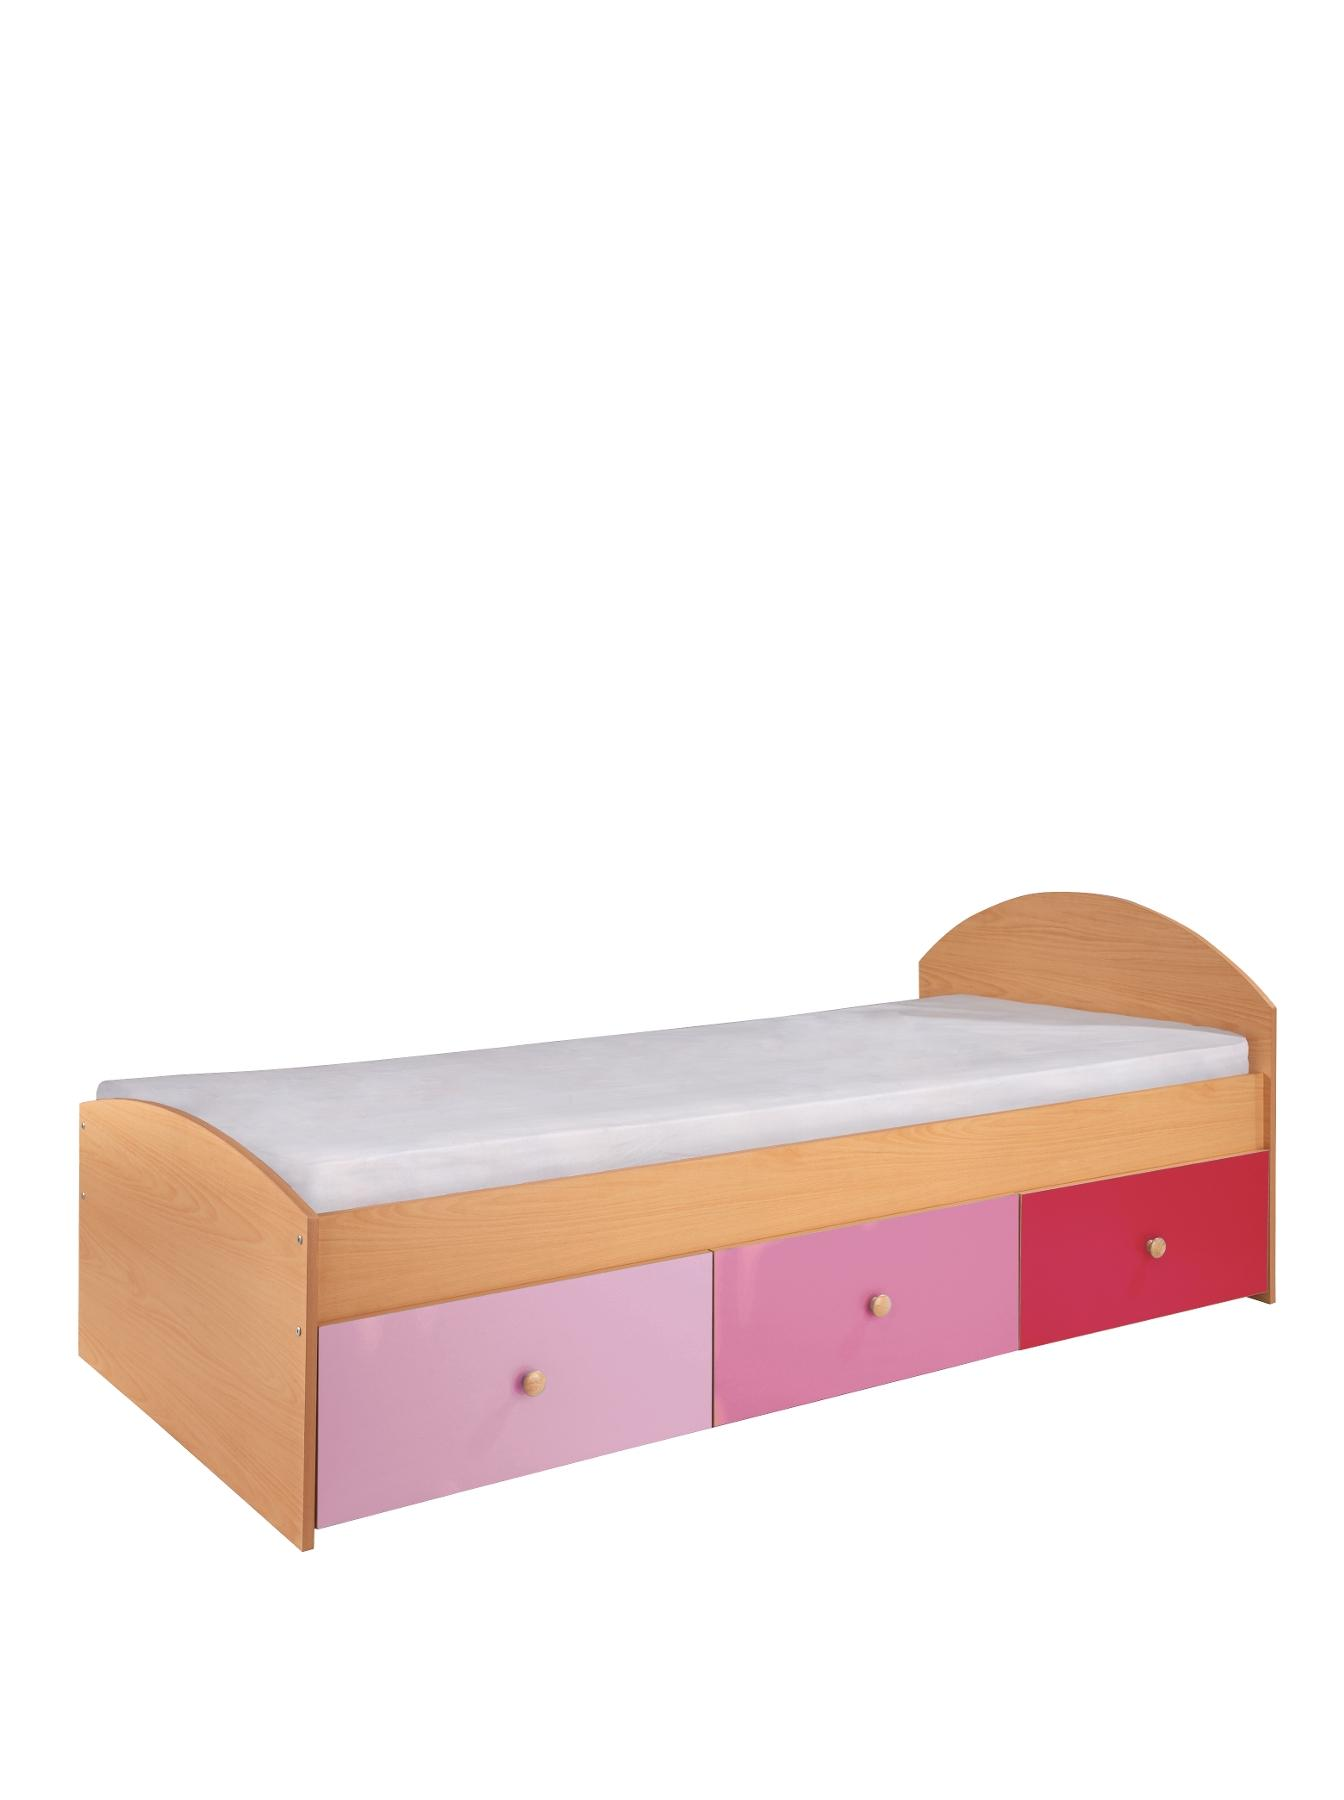 Buy cheap metro bed frame compare beds prices for best uk deals - Cheap childrens bed frames ...